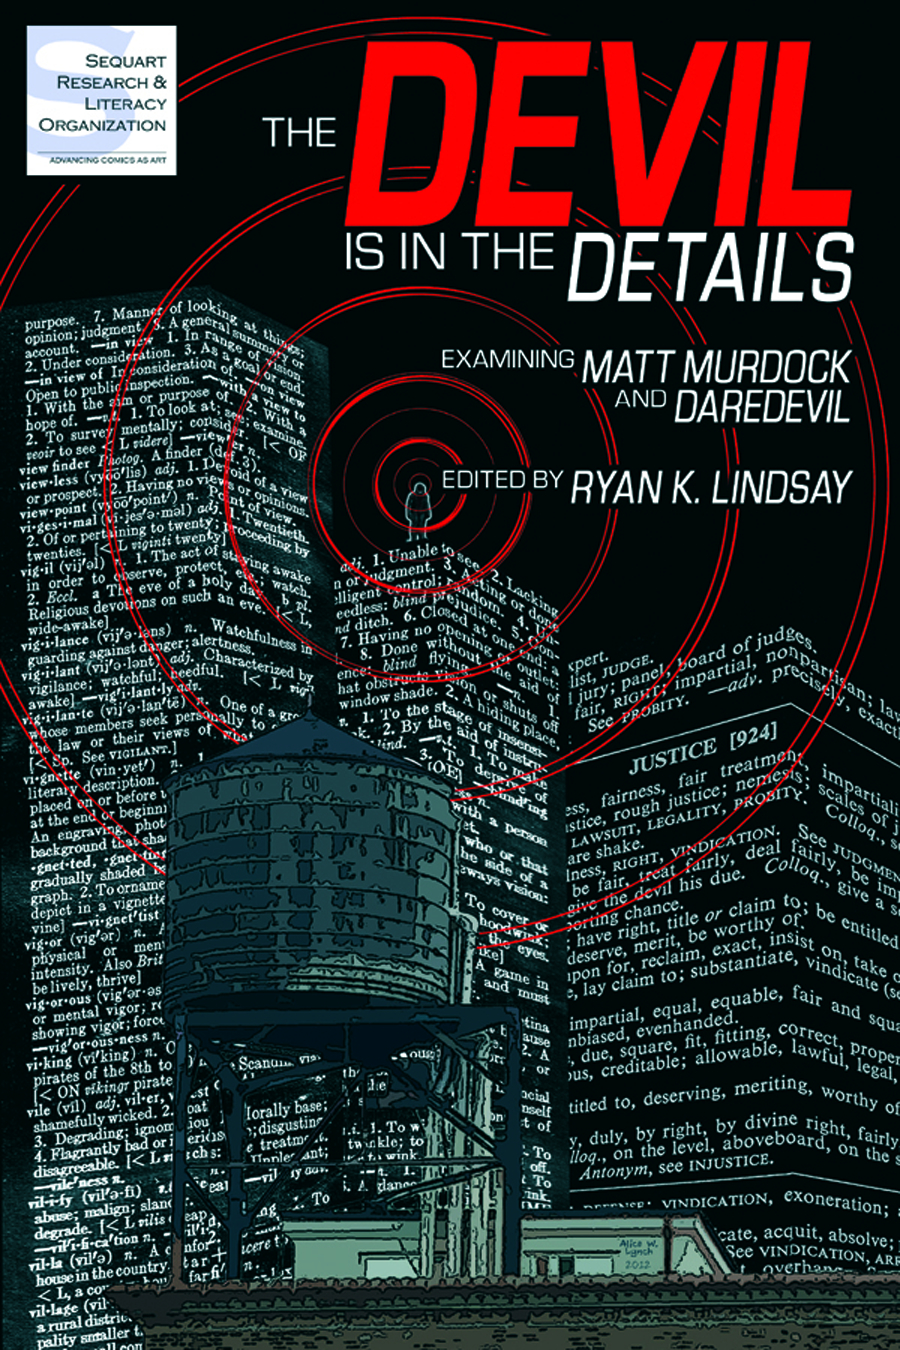 DEVIL IS IN DETAILS EXAMINING MATT MURDOCK & DAREDEVIL SC